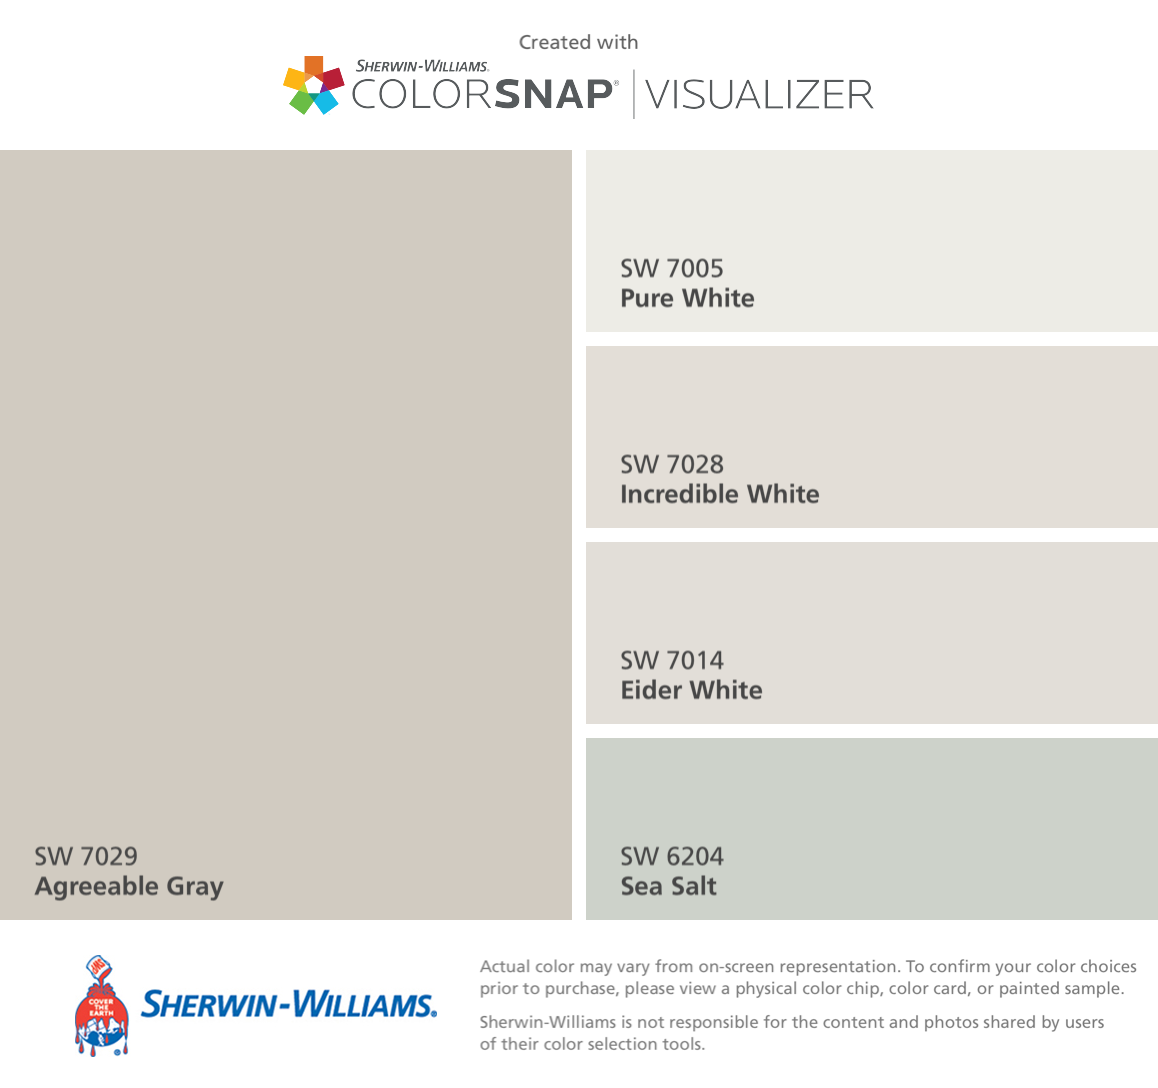 I found these colors with ColorSnap® Visualizer for iPhone by Sherwin-Williams: Agreeable Gray (SW 7029), Pure White (SW 7005), Incredible White (SW 7028), Eider White (SW 7014), Sea Salt (SW 6204). #sherwinwilliamsagreeablegray